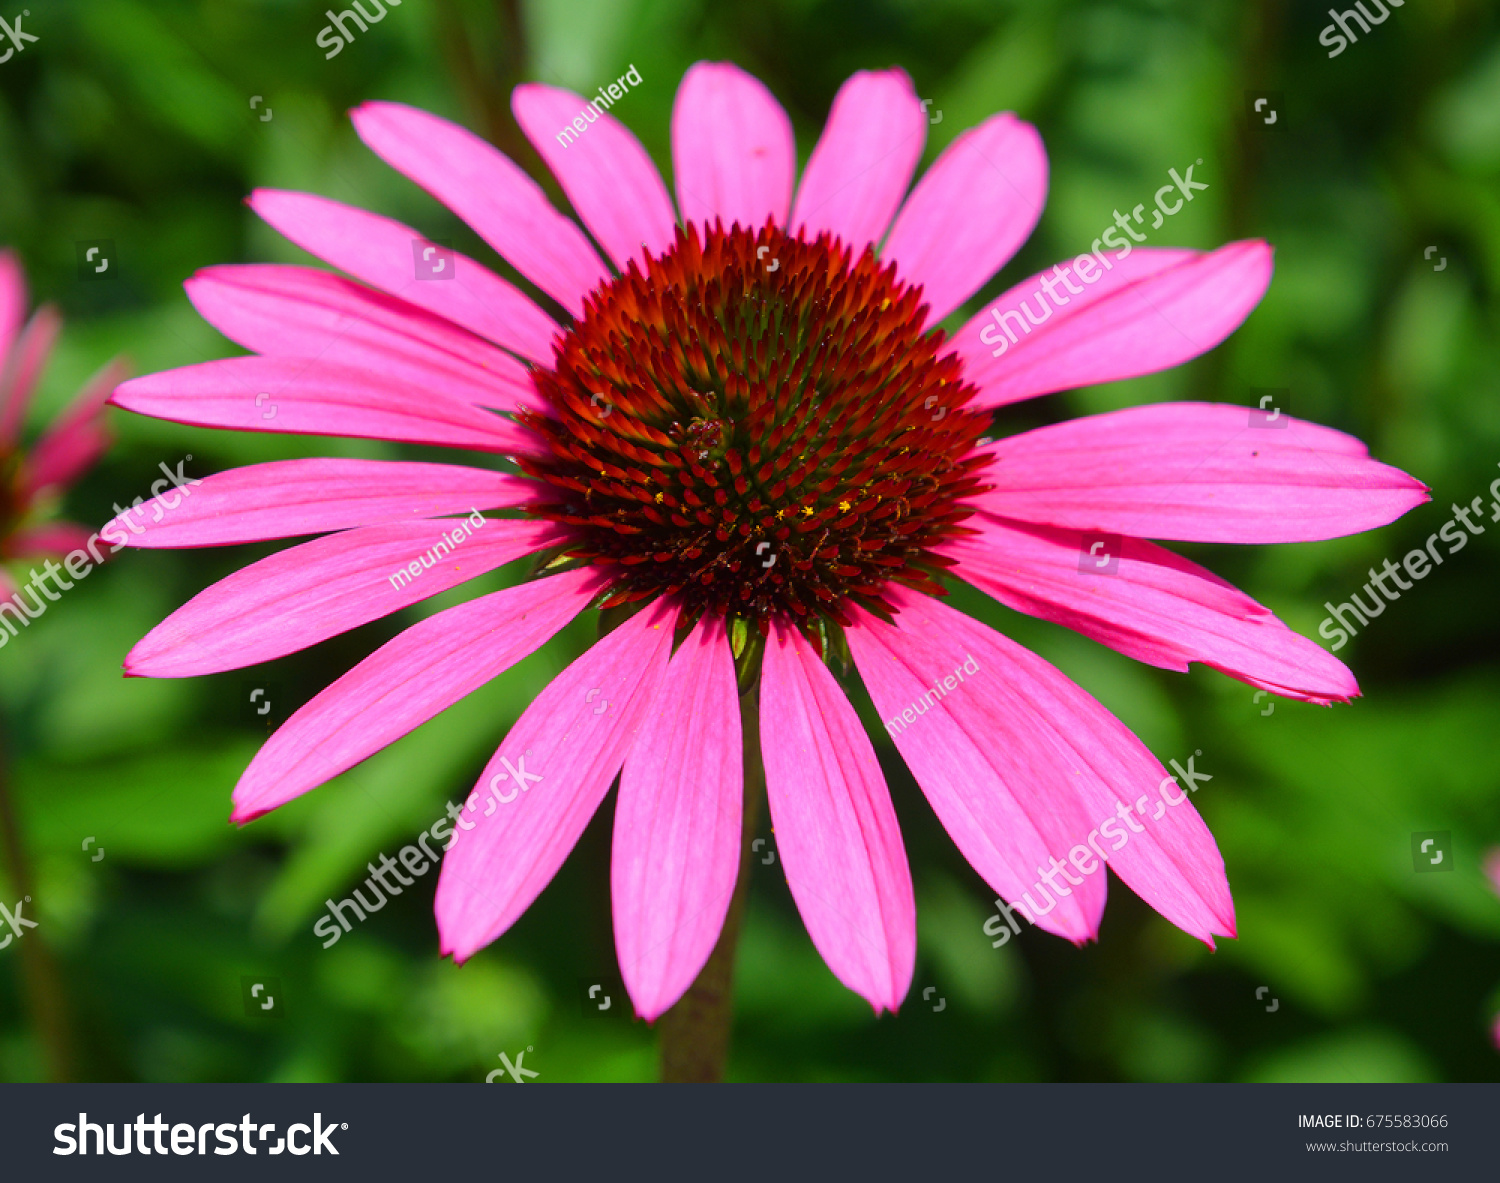 Echinacea is a genus or group of herbaceous flowering plants in the echinacea is a genus or group of herbaceous flowering plants in the daisy family the echinacea genus has nine species which are commonly called purple izmirmasajfo